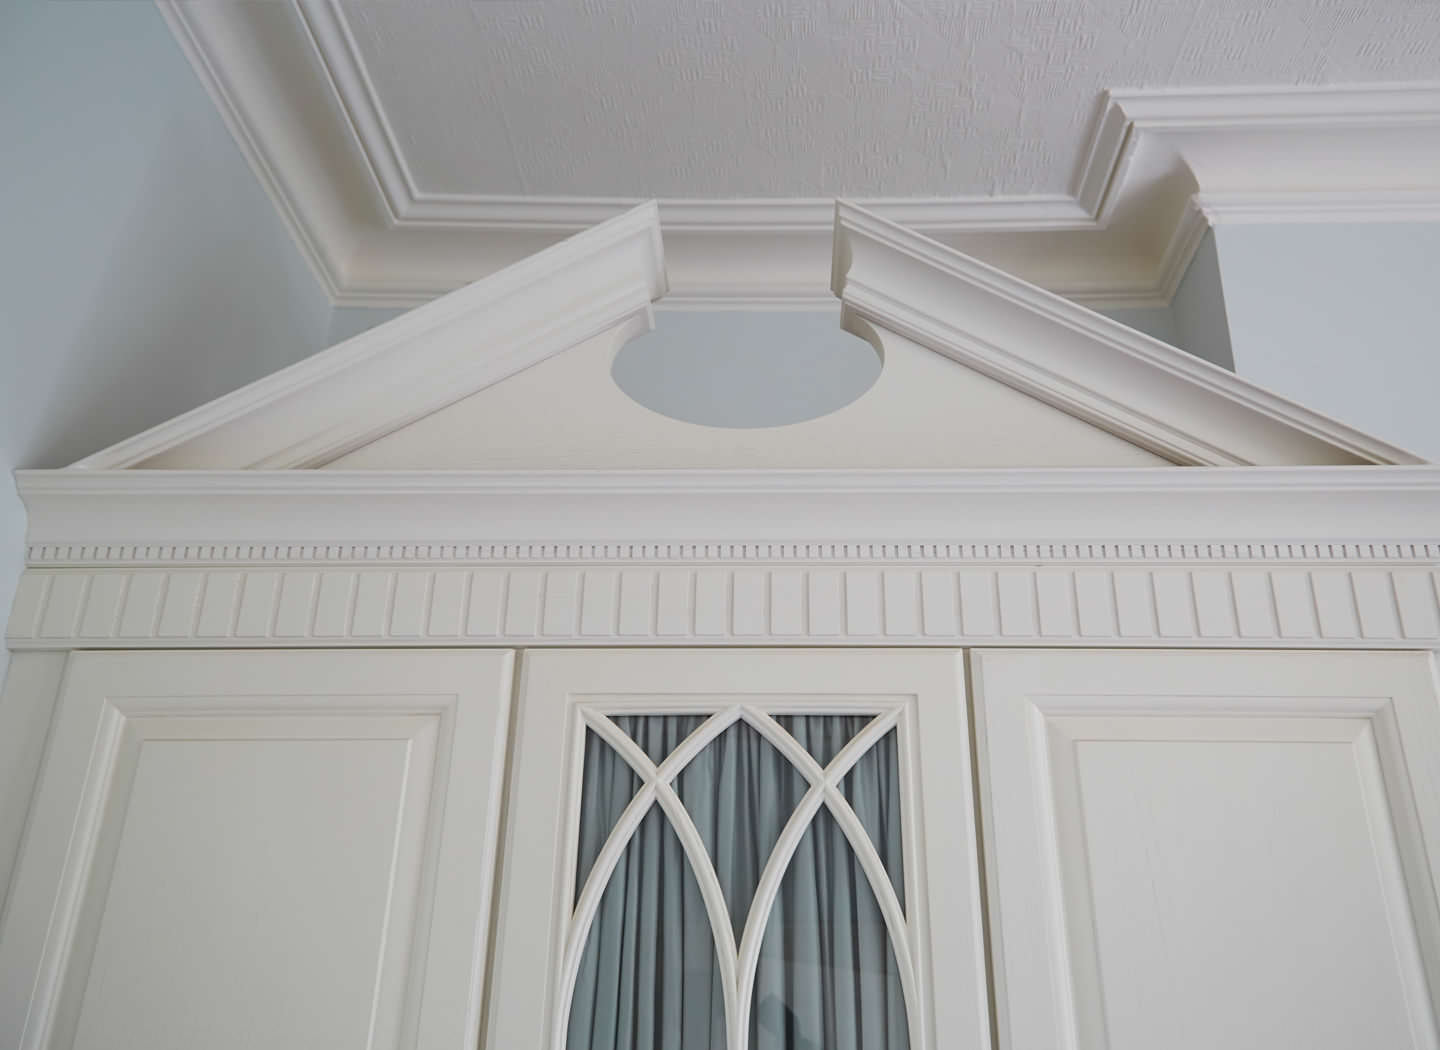 Case study showing traditional wardrobe pediment